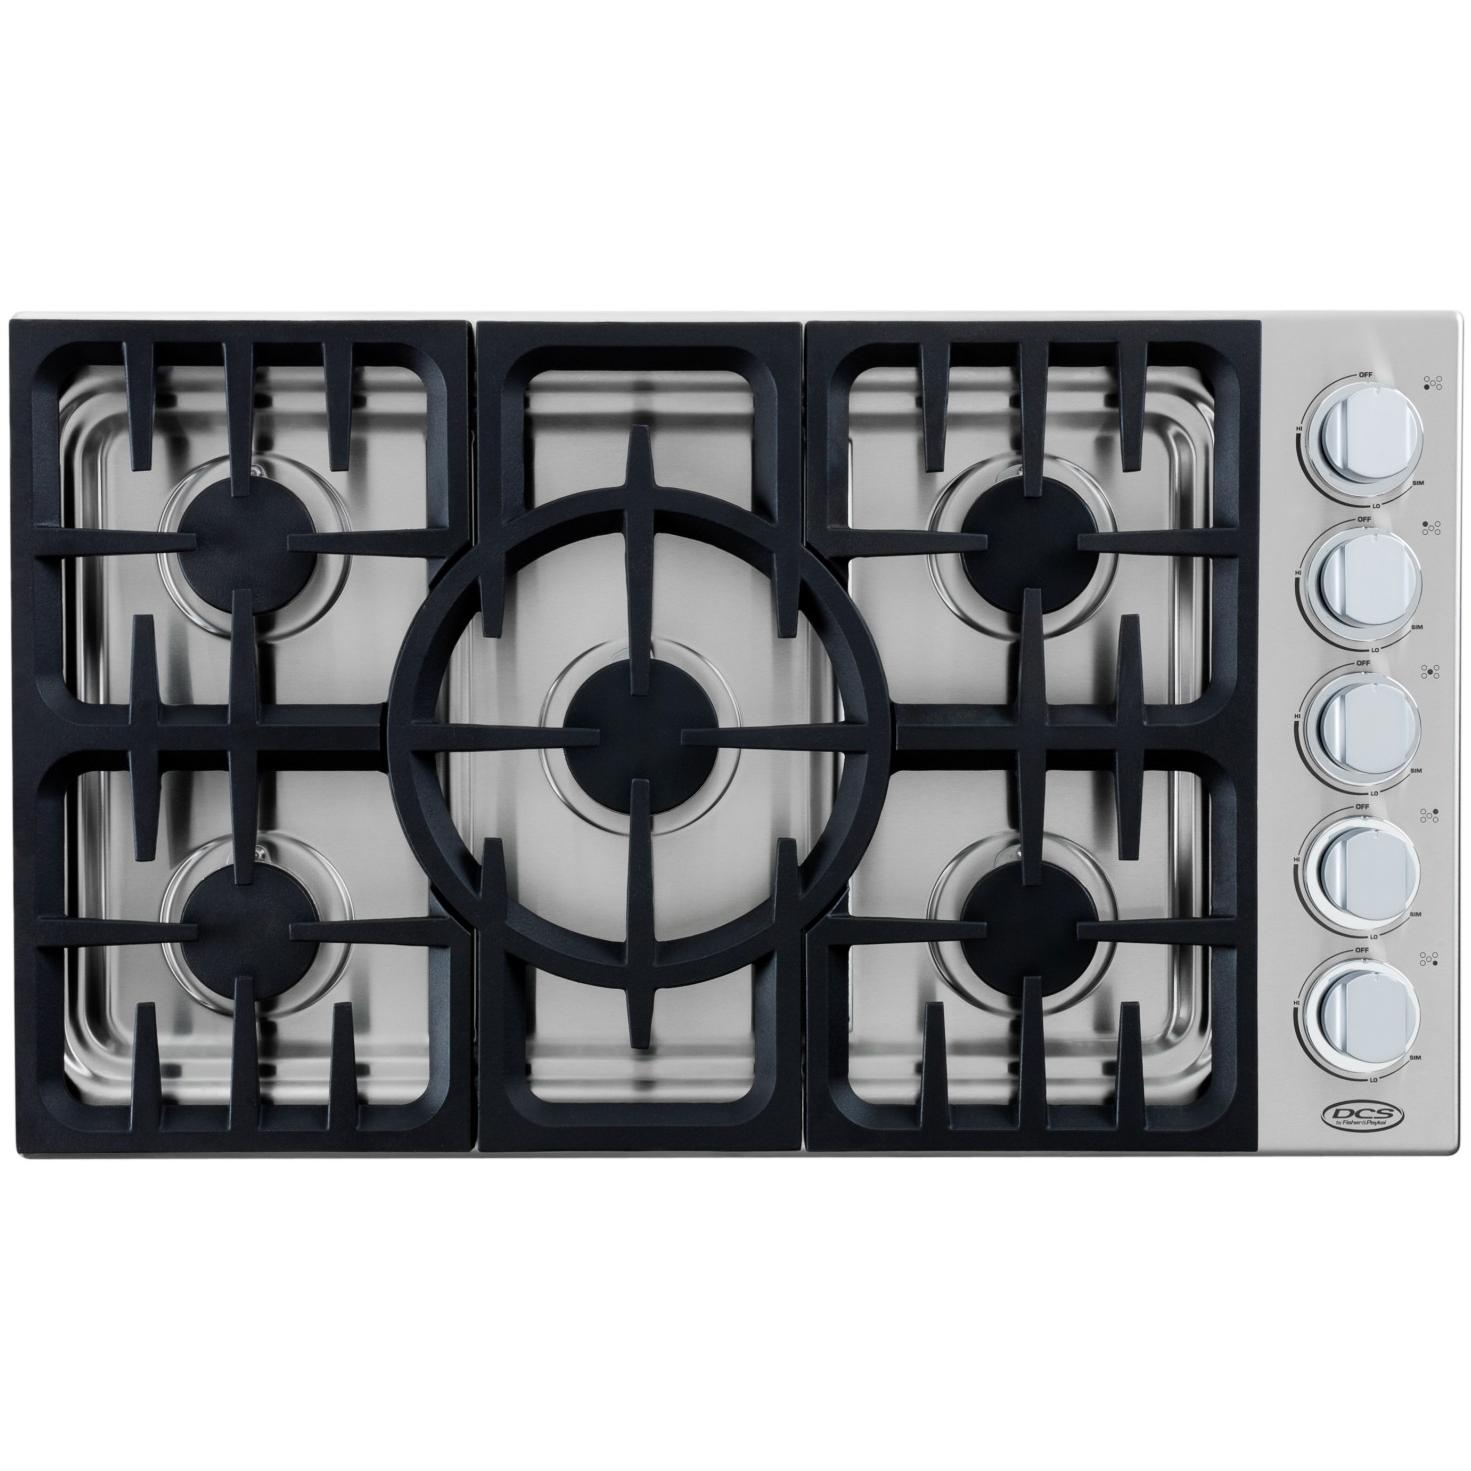 DCS CDU365L 36-Inch Propane Gas Drop-in Cooktop By Fisher Paykel